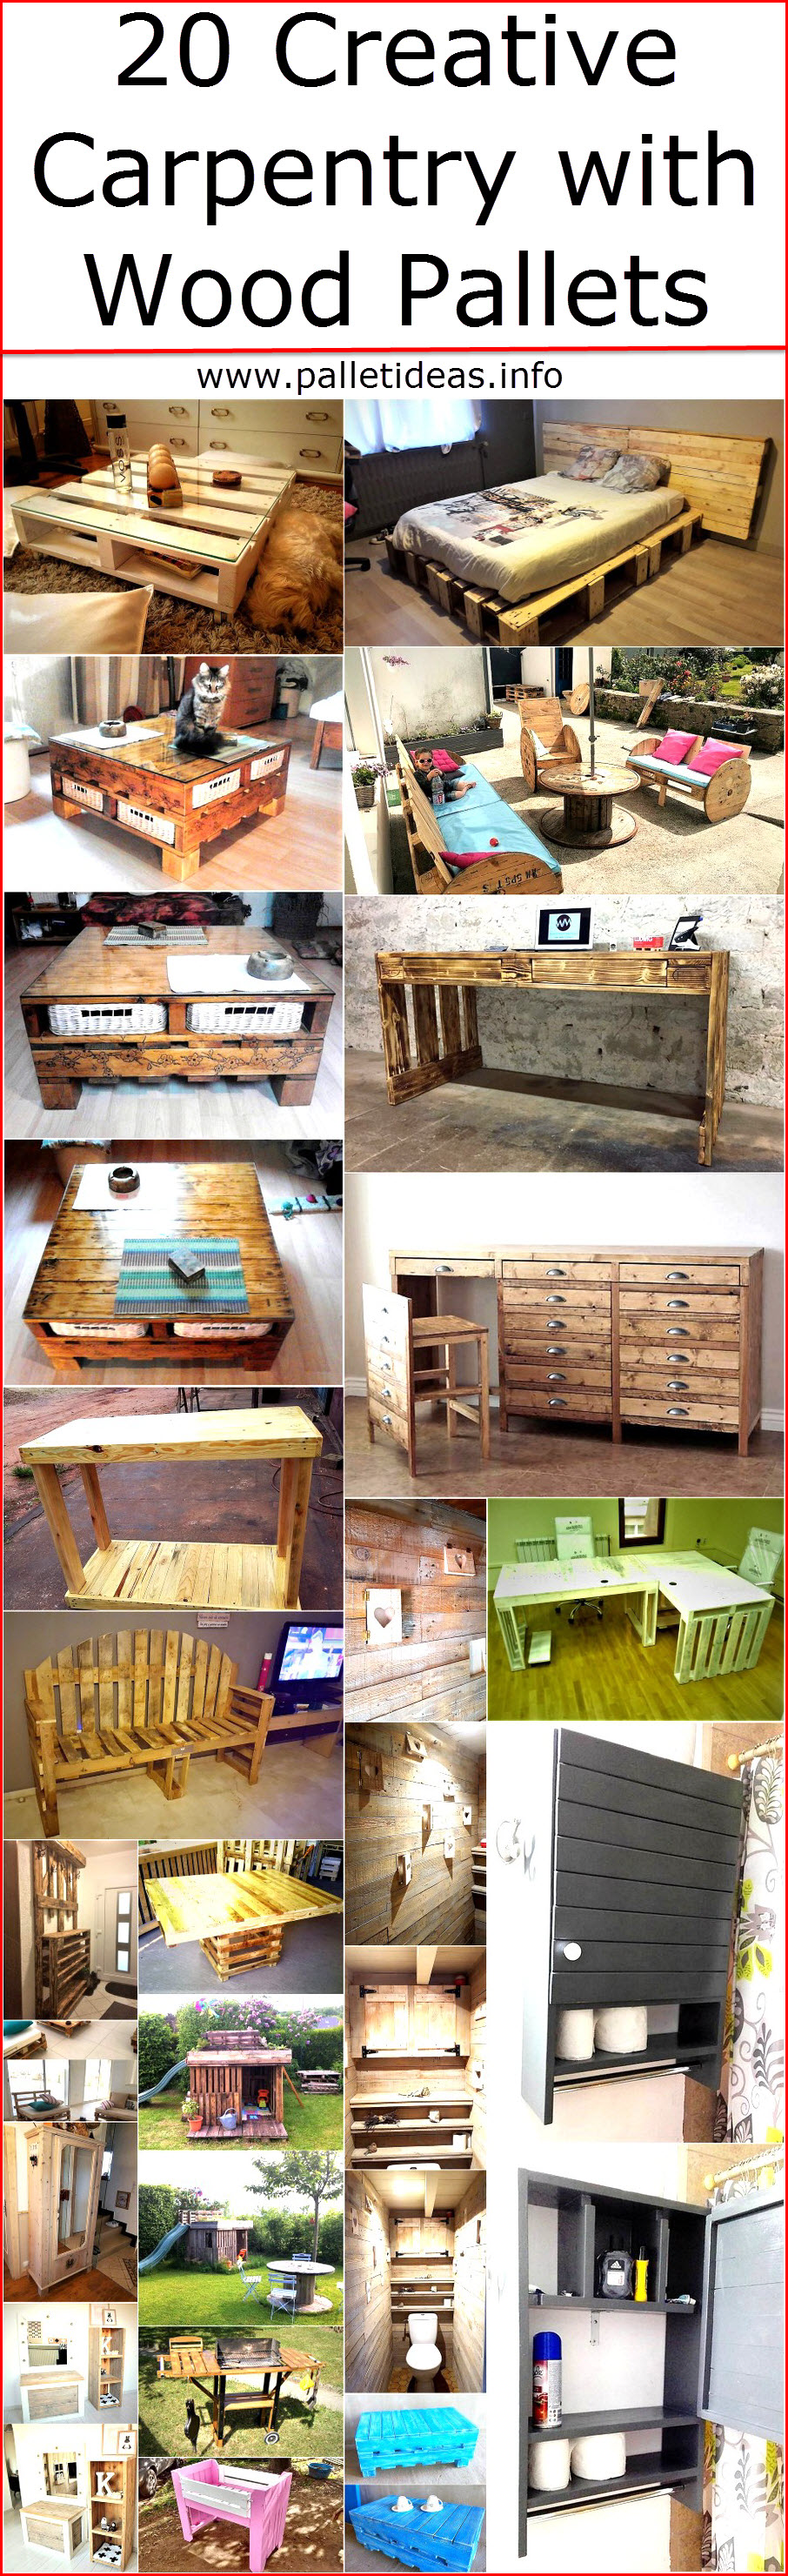 20 Creative Carpentry with Wood Pallets